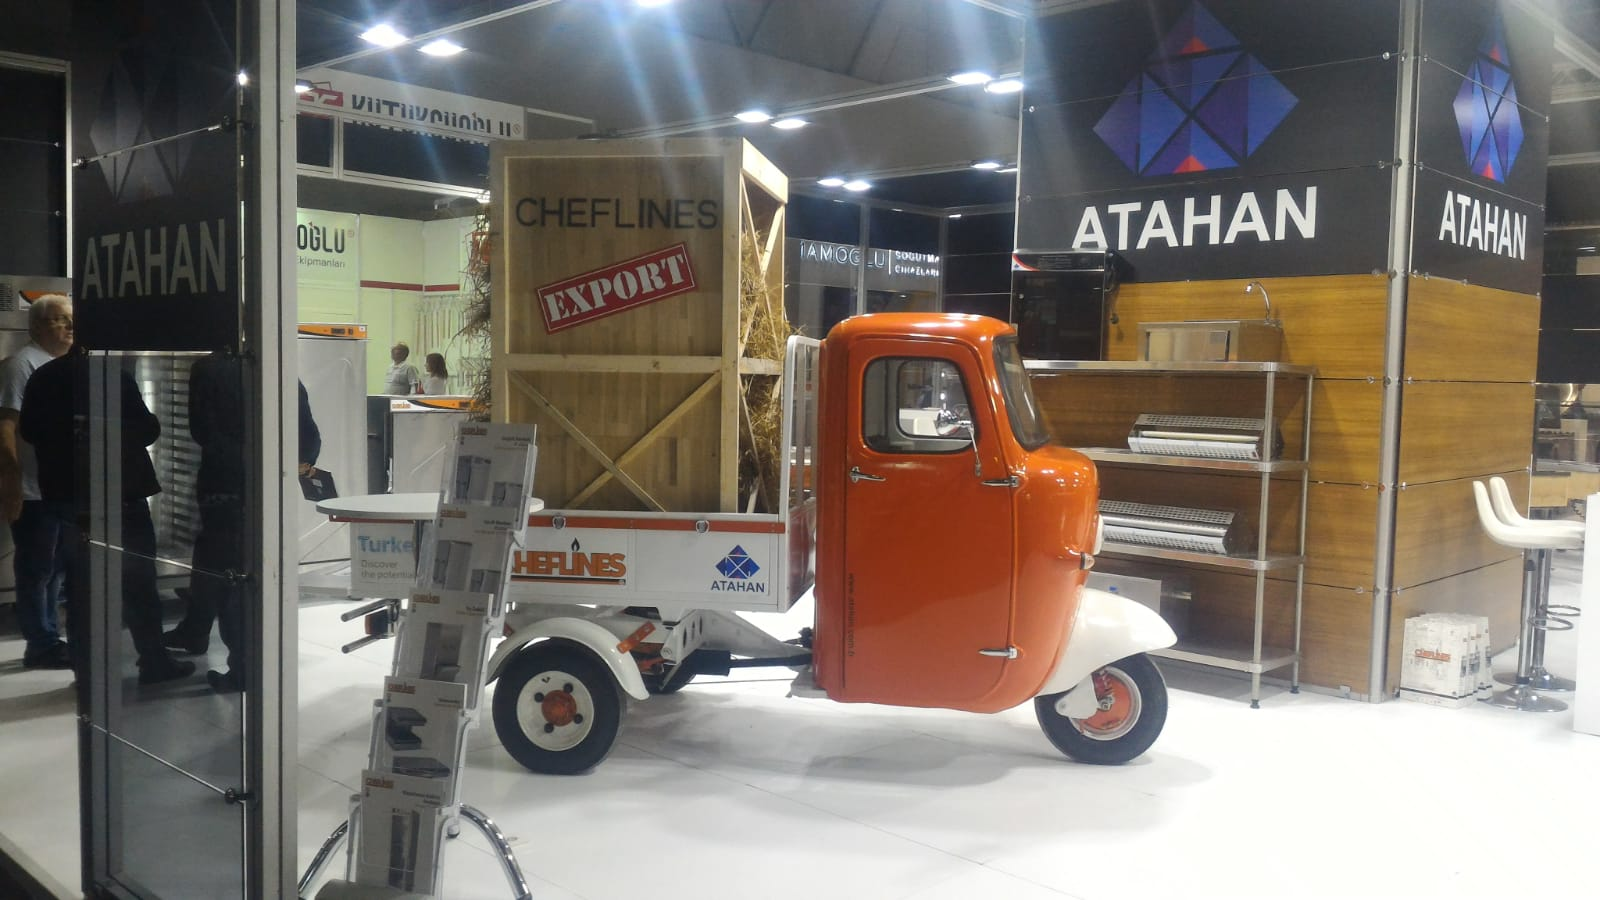 <a href='application-detail/153'>CLICK HERE - Hostech 2018 ISTANBUL TURKEY ATAHAN CHEFLINES STAND   SHOW MORE<a/>